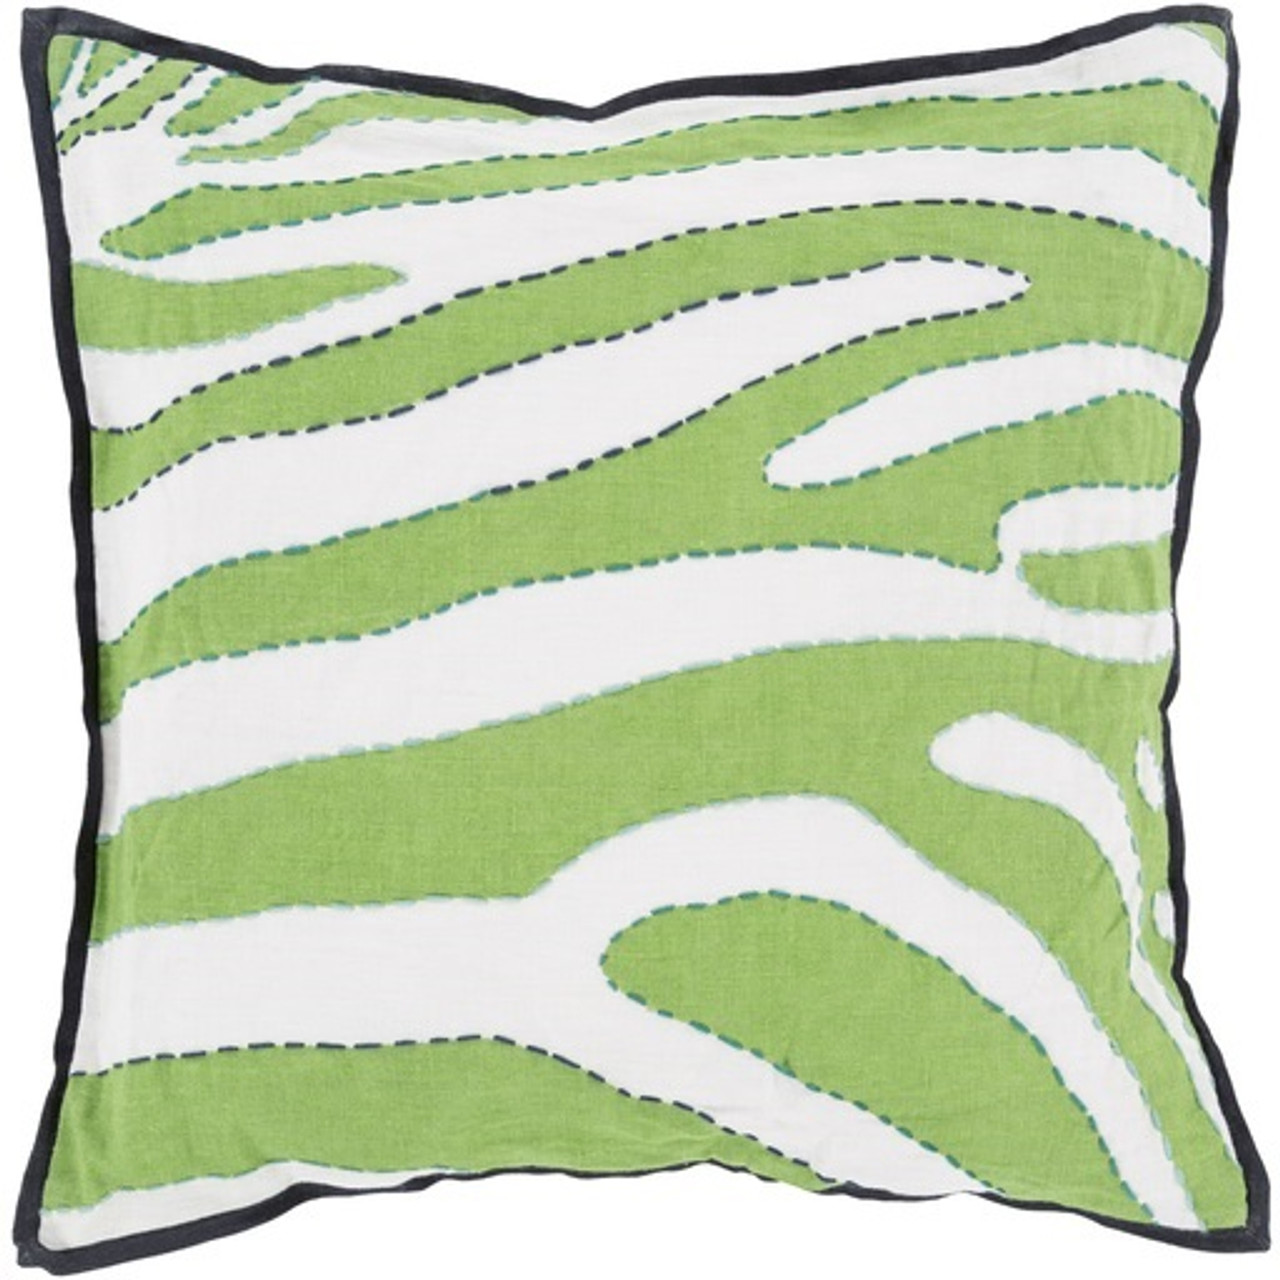 22 Lime Green Navy Blue White Zebra Print Square Decorative Throw Pillow Poly Filled Christmas Central